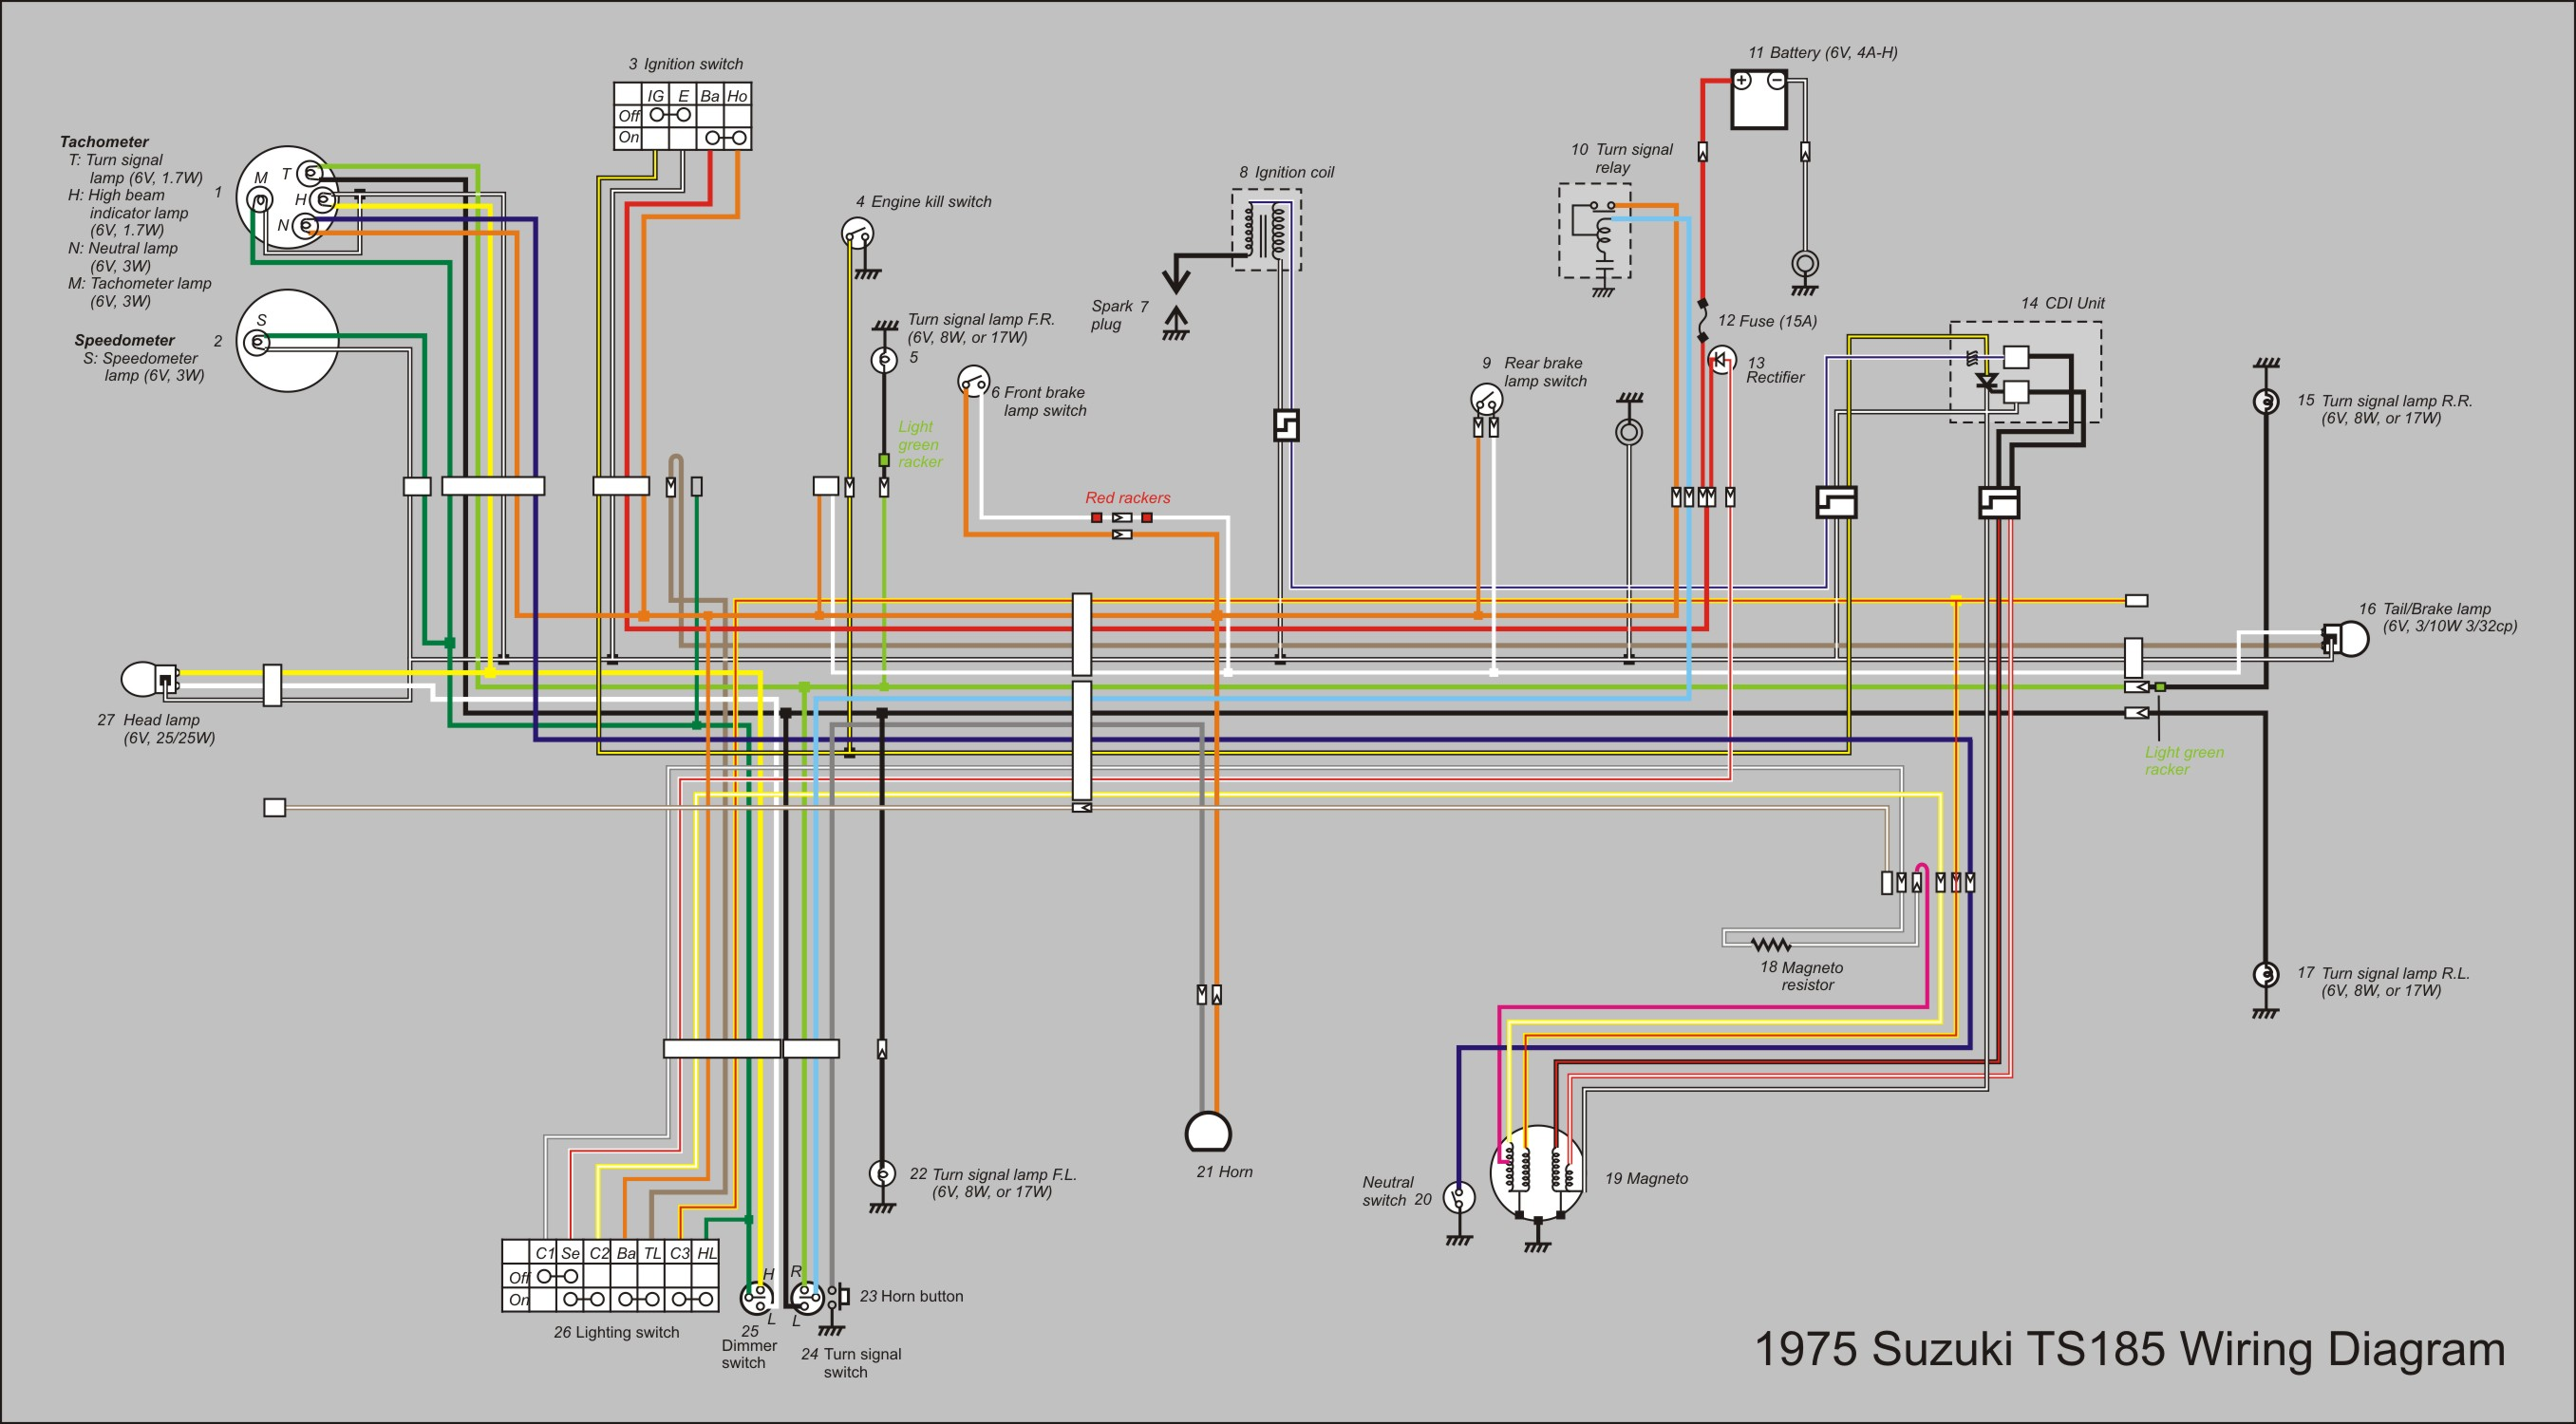 TS185_Wiring_Diagram_new file ts185 wiring diagram new jpg wikimedia commons on ts wiring diagram